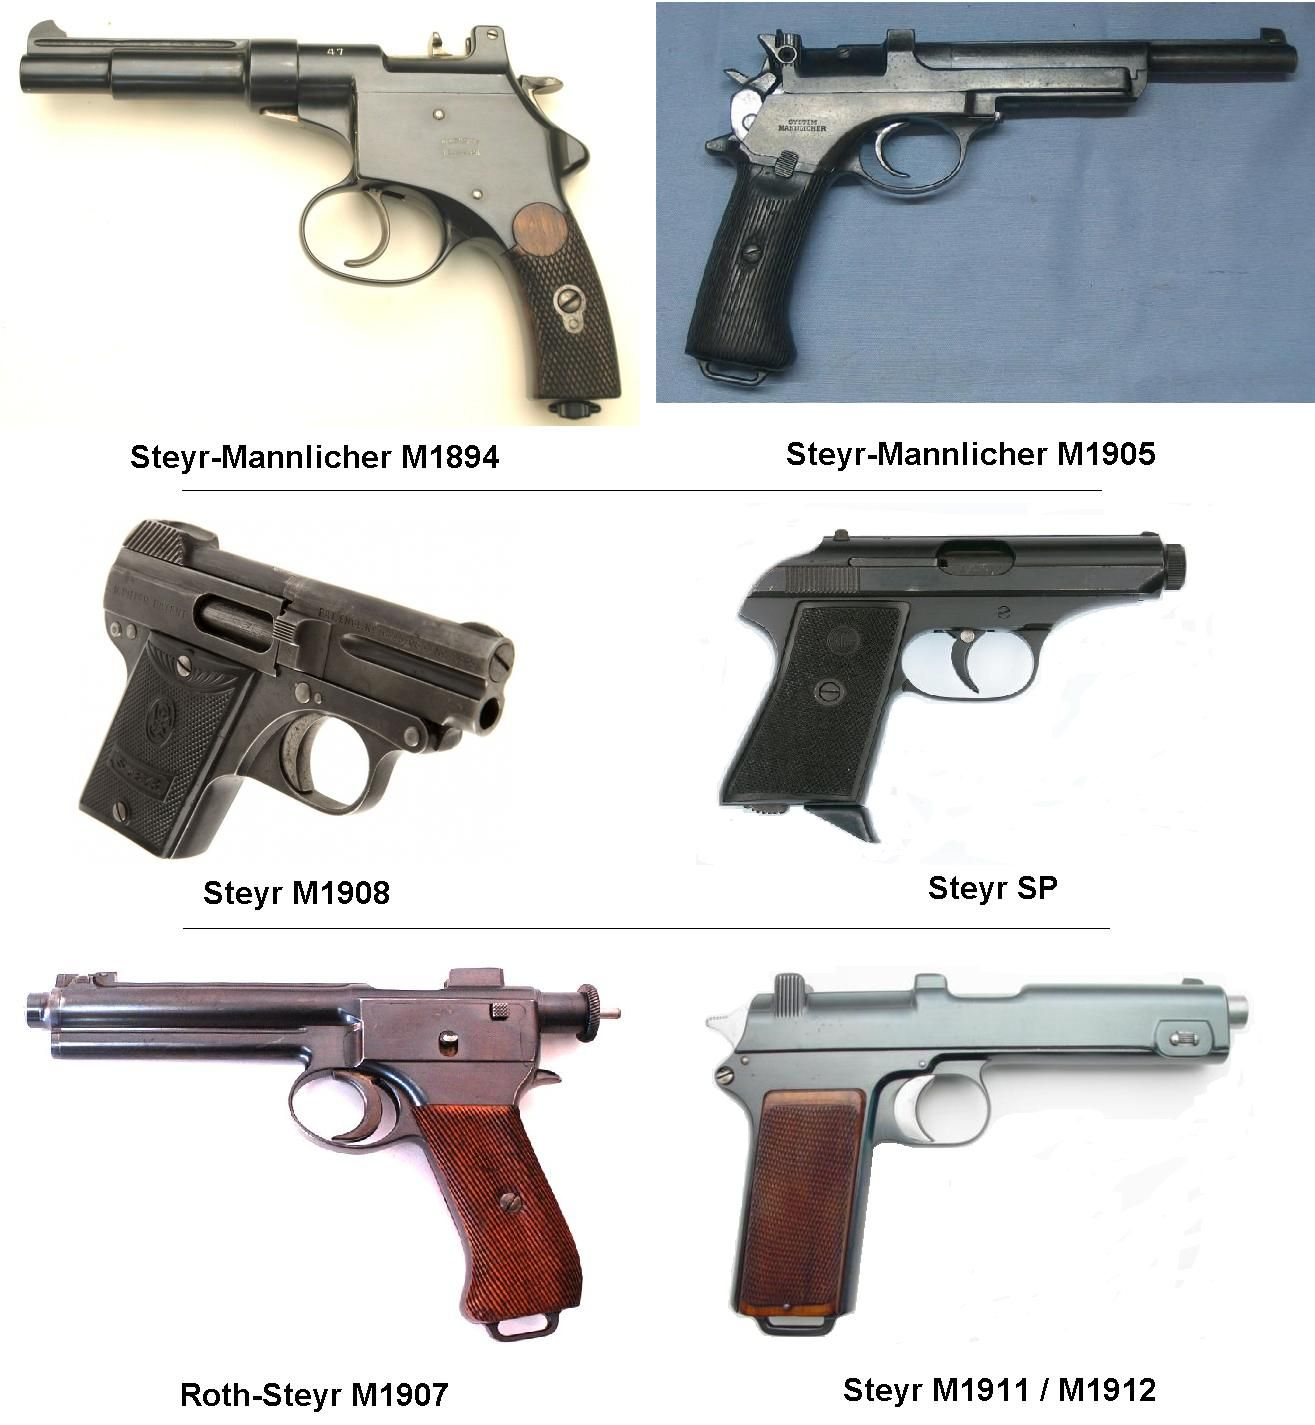 Pin by Graeme Thomson on Weapons | Steyr, Guns, Weapons